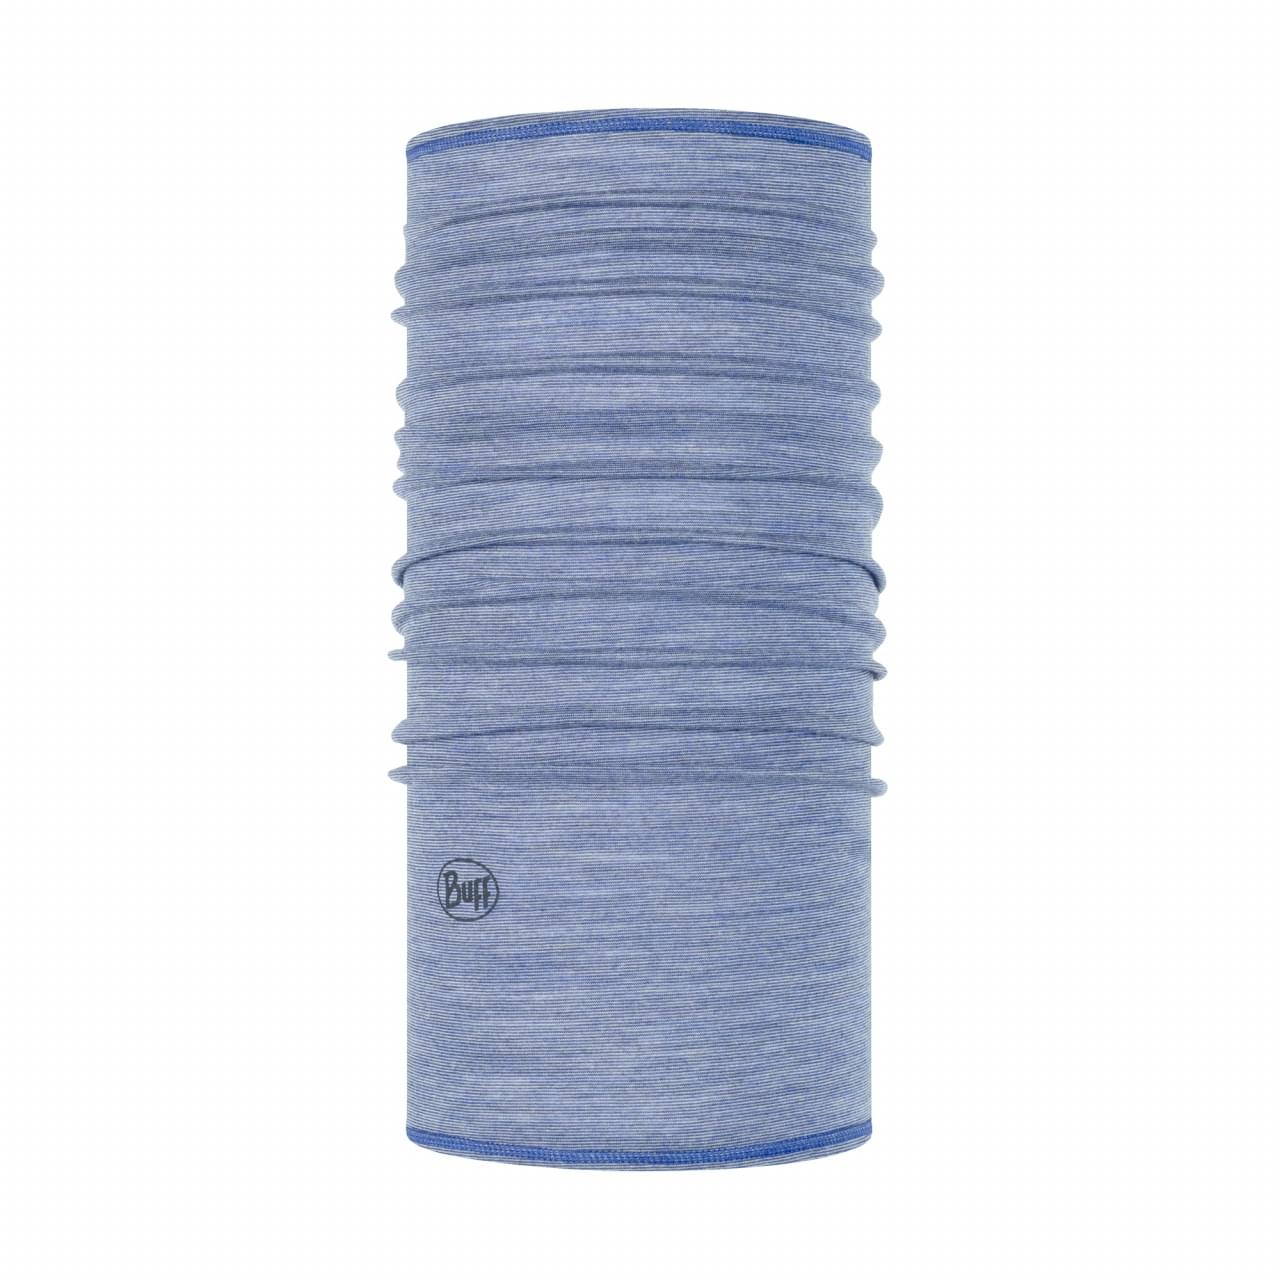 Buff Lightweight Merino Wool Blauw